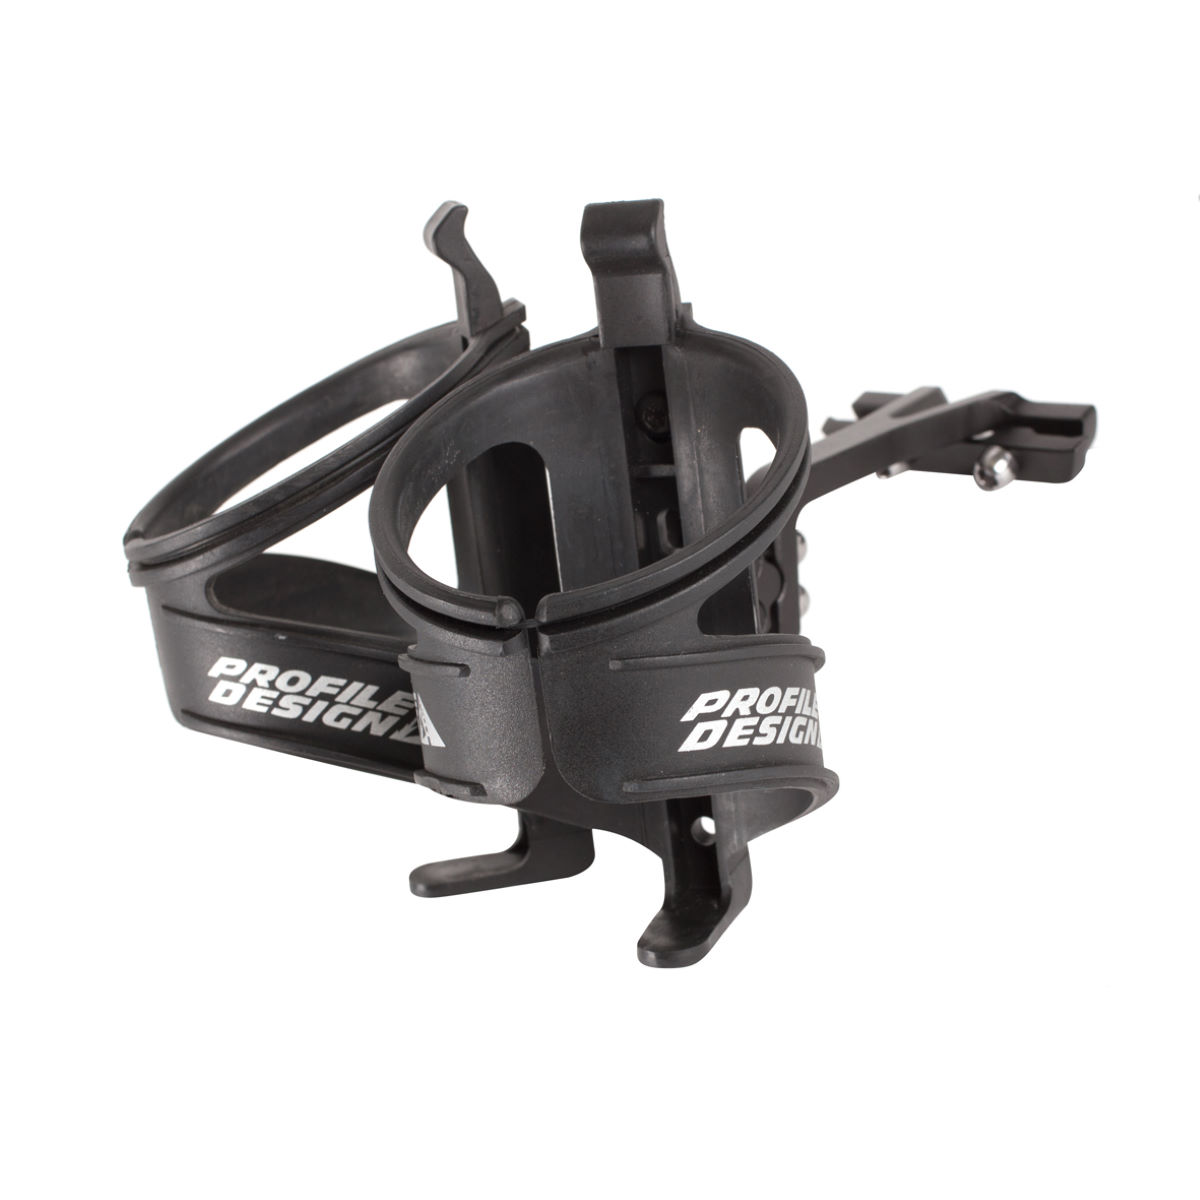 Profile Aqua Rear Mount Bottle Cage System